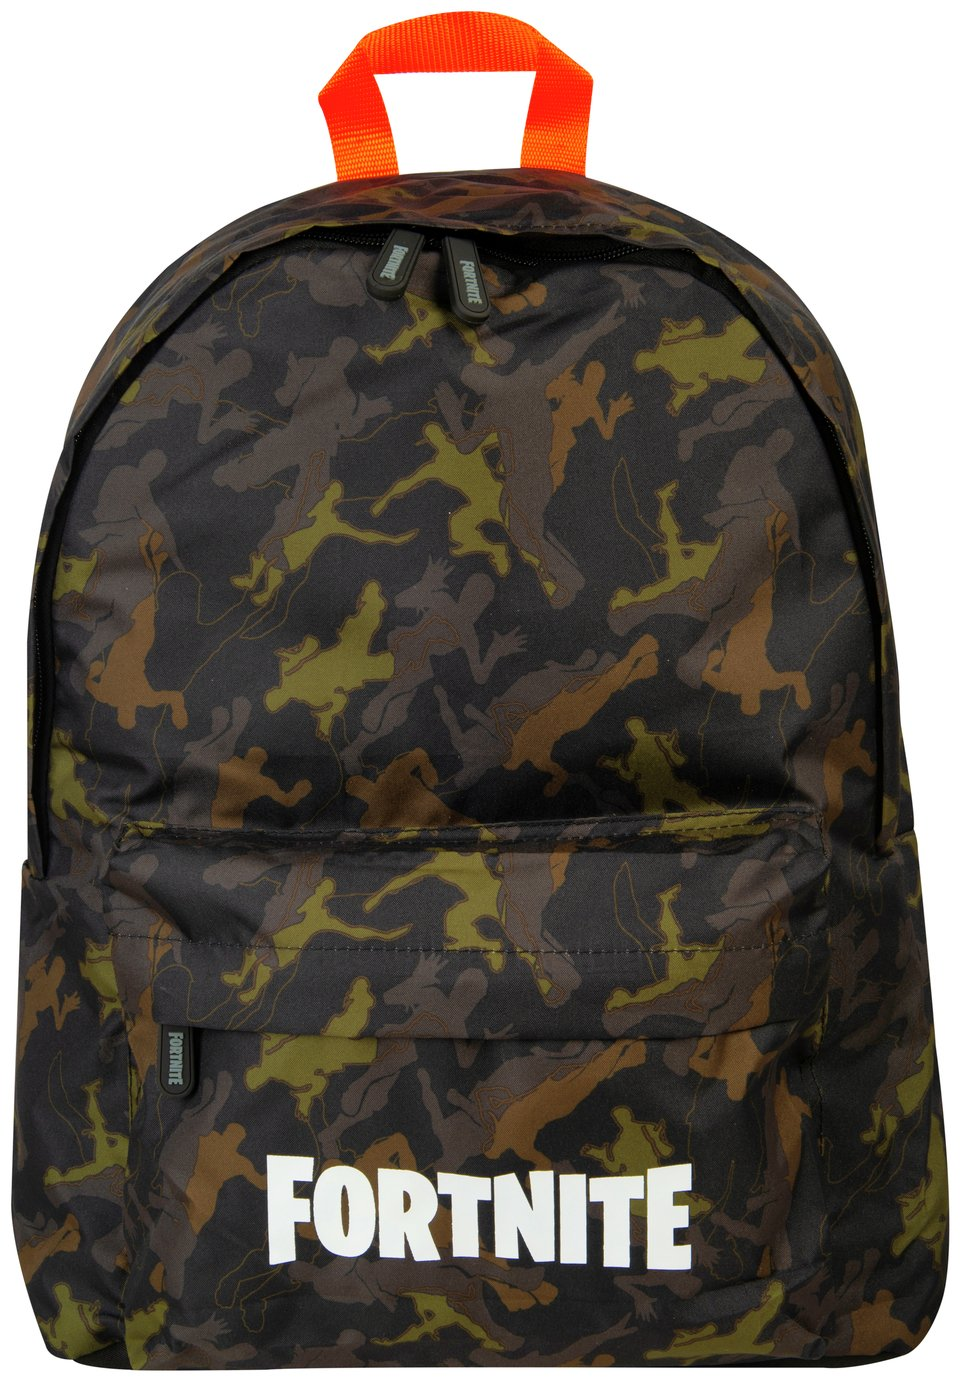 Fortnite Camouflage 17.3L Backpack - Black